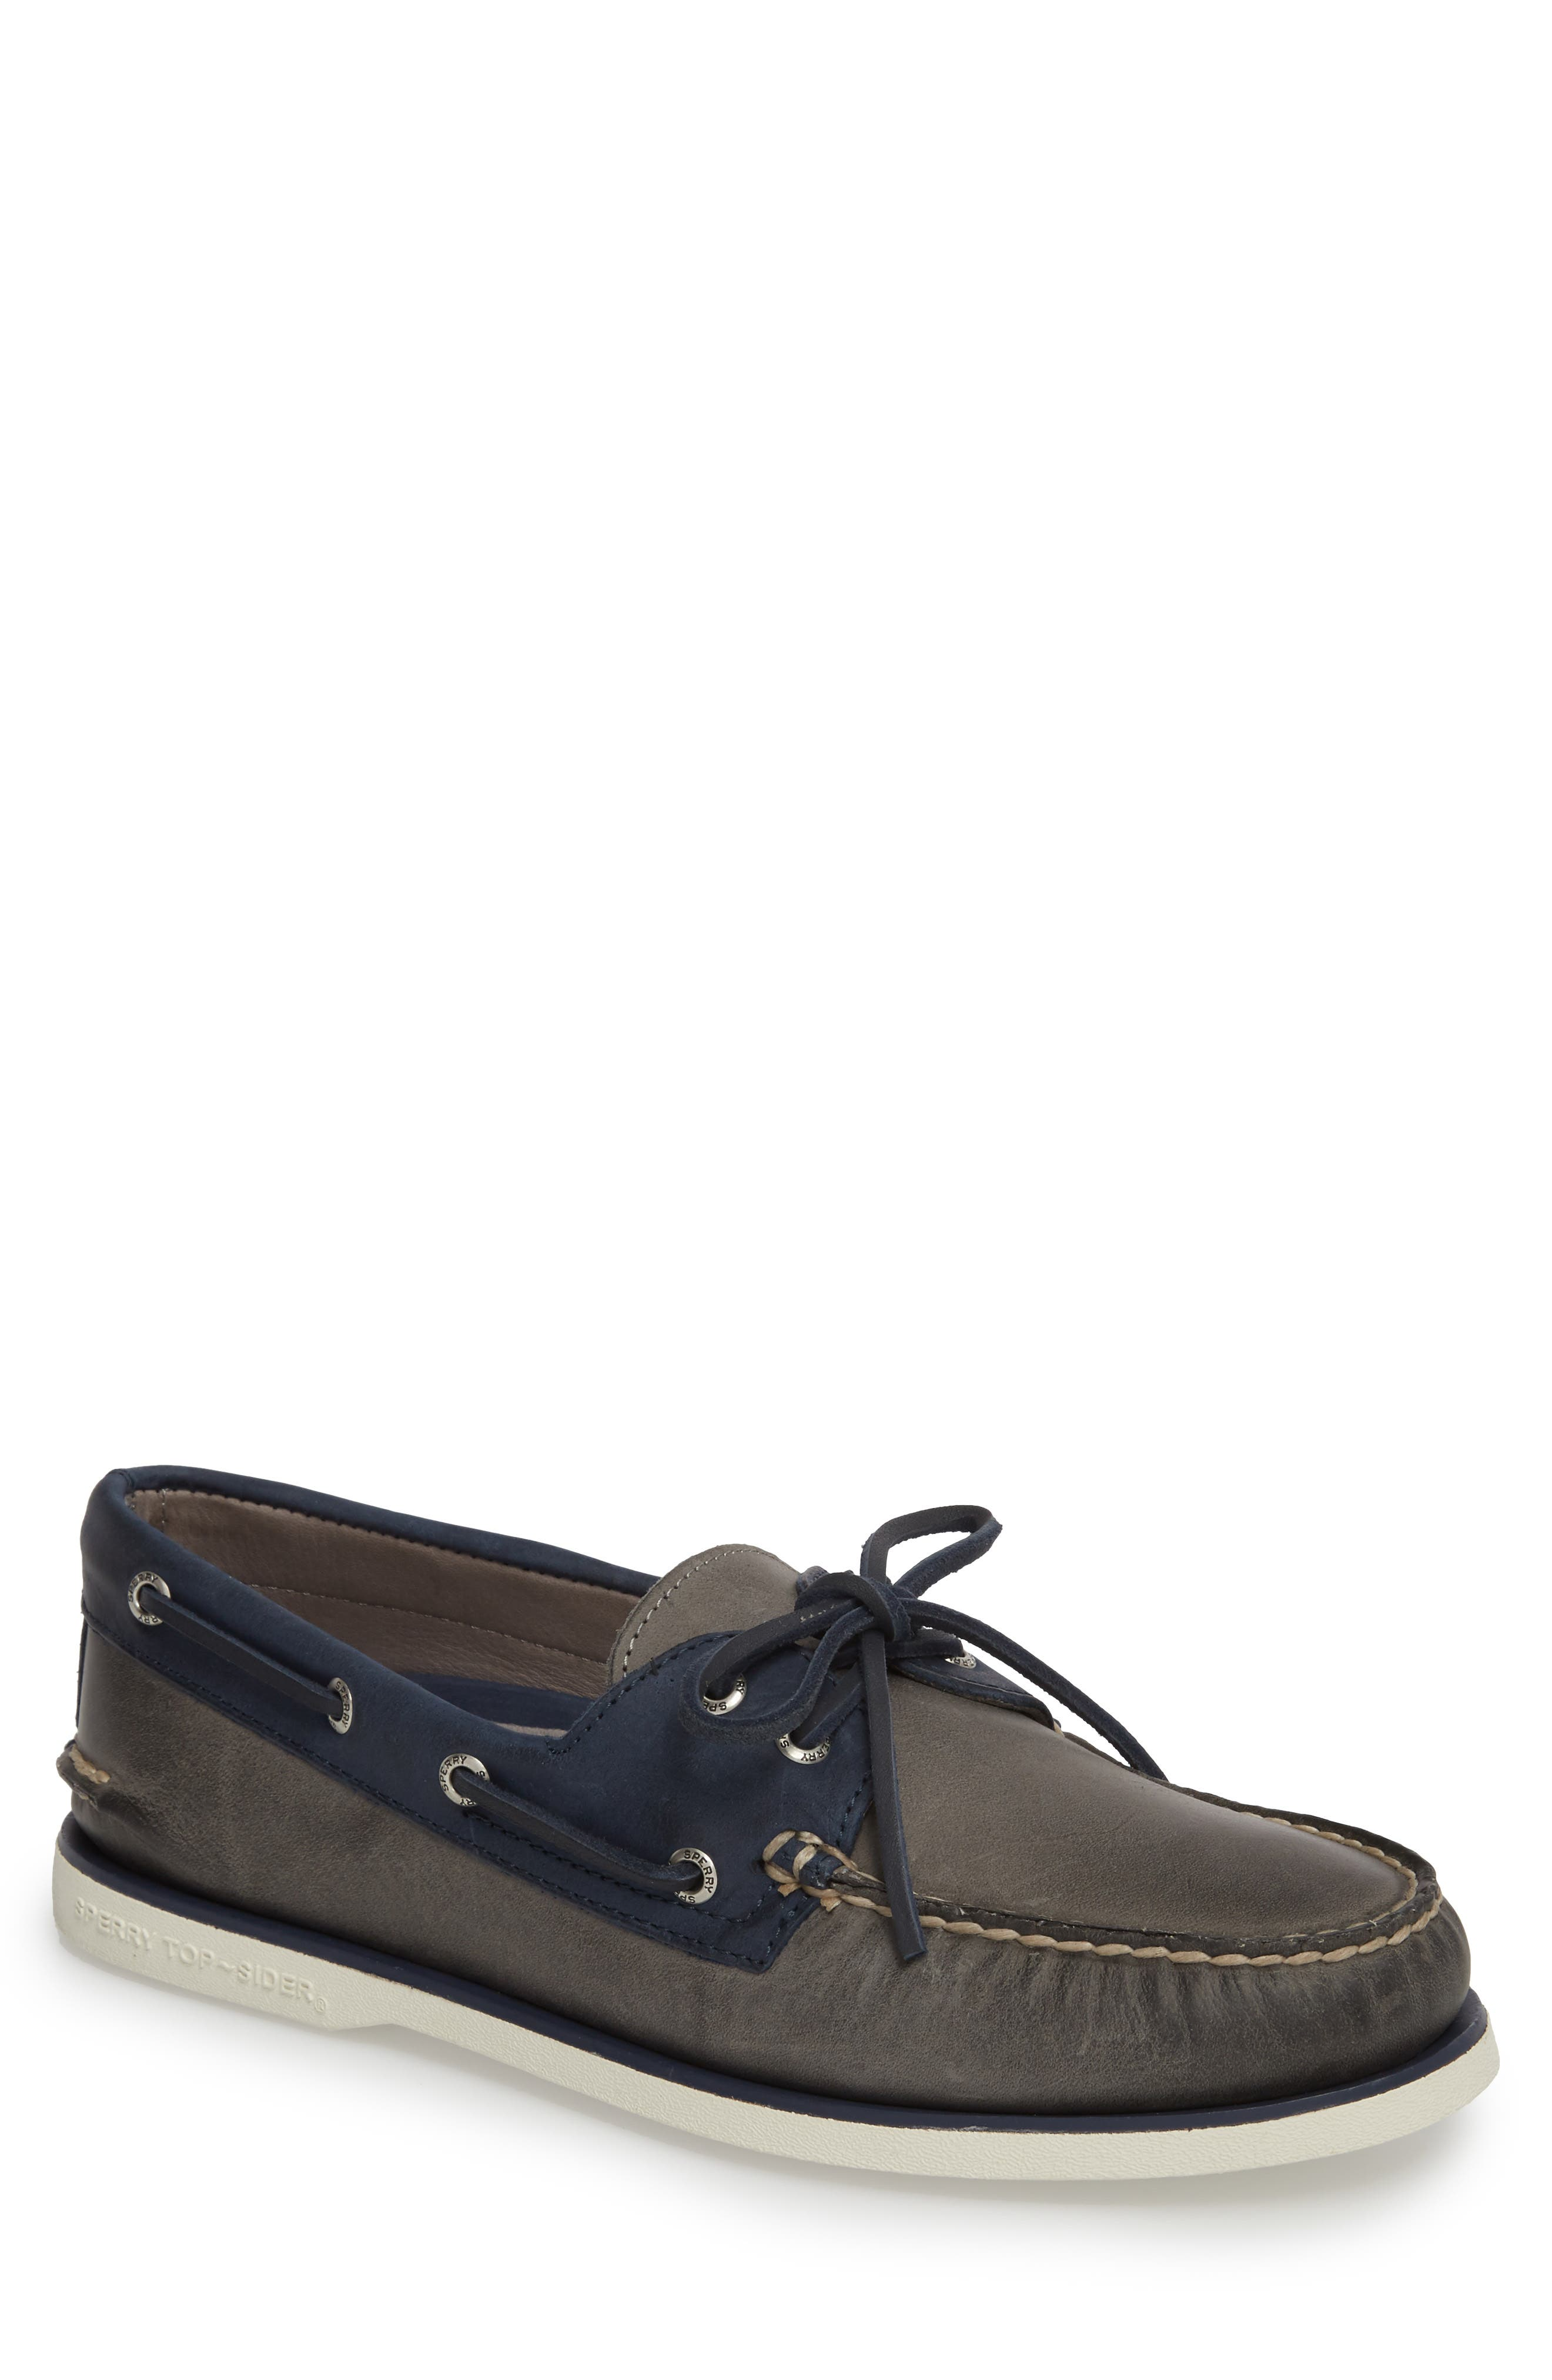 SPERRY, Gold Cup Authentic Original Boat Shoe, Main thumbnail 1, color, GREY/ NAVY LEATHER